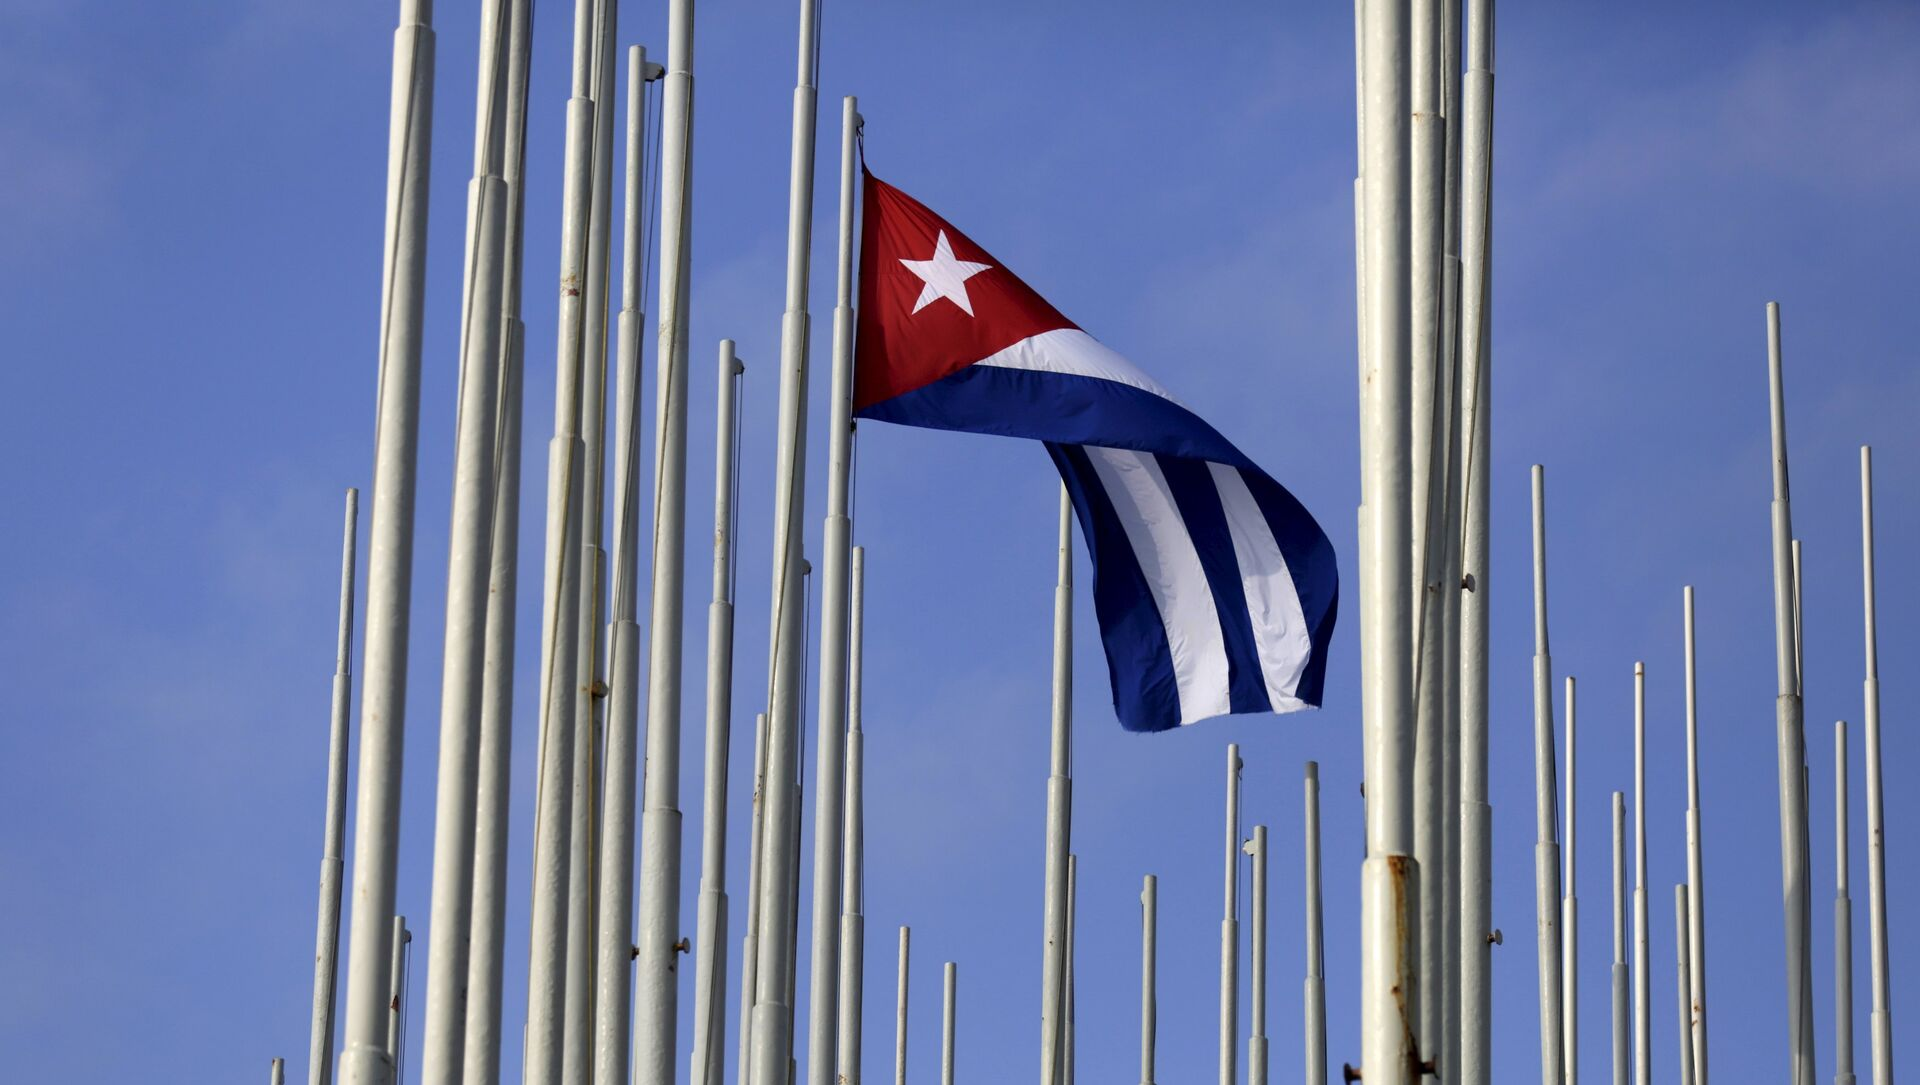 The Cuban flag flies in front of the U.S. Interests Section (background), in Havana May 22, 2015 - Sputnik Mundo, 1920, 23.12.2020